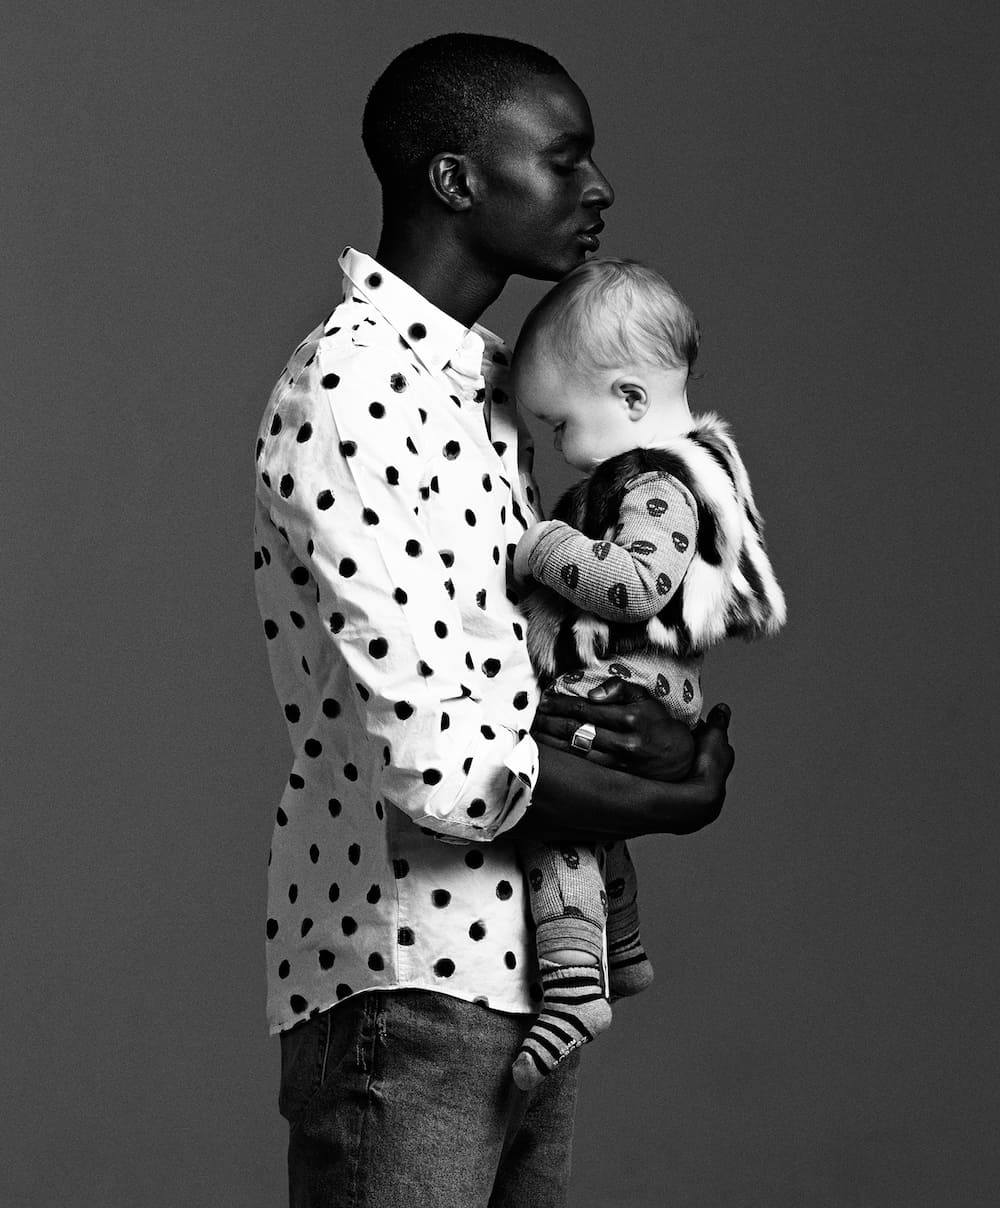 GentleMan by photographer Zoe Adlersberg & stylist Maria Walker. creating a series of striking black and white portraits of men with babies